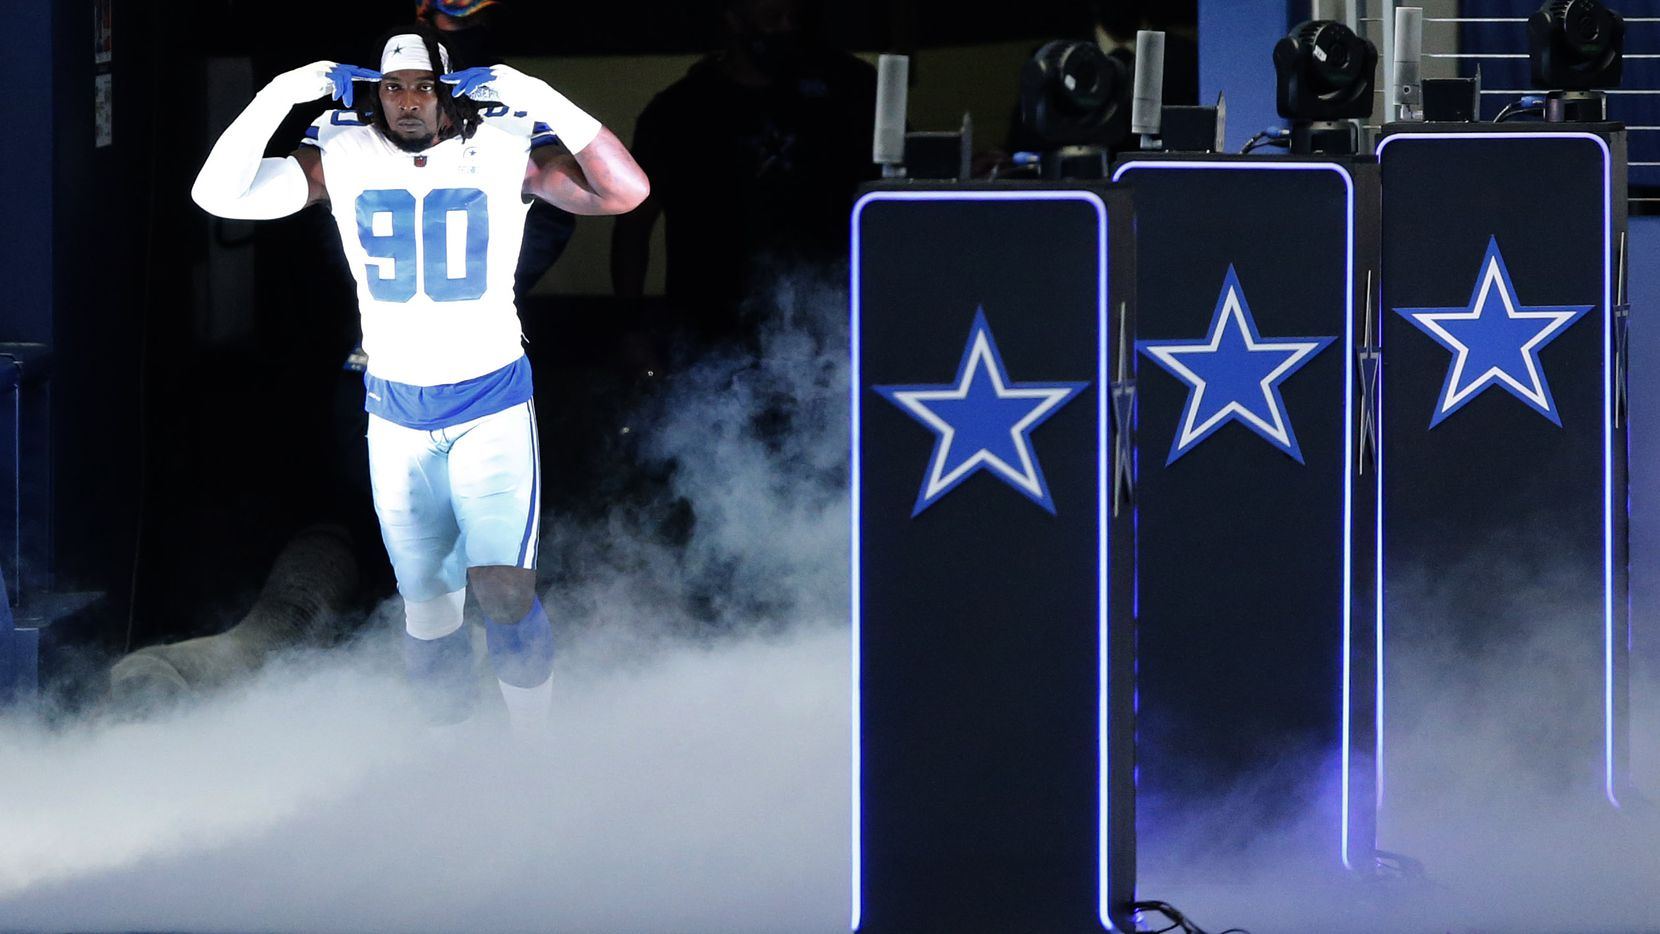 Cowboys defensive end DeMarcus Lawrence (90) is introduced before a game against the Browns at AT&T Stadium in Arlington on Sunday, Oct. 4, 2020.